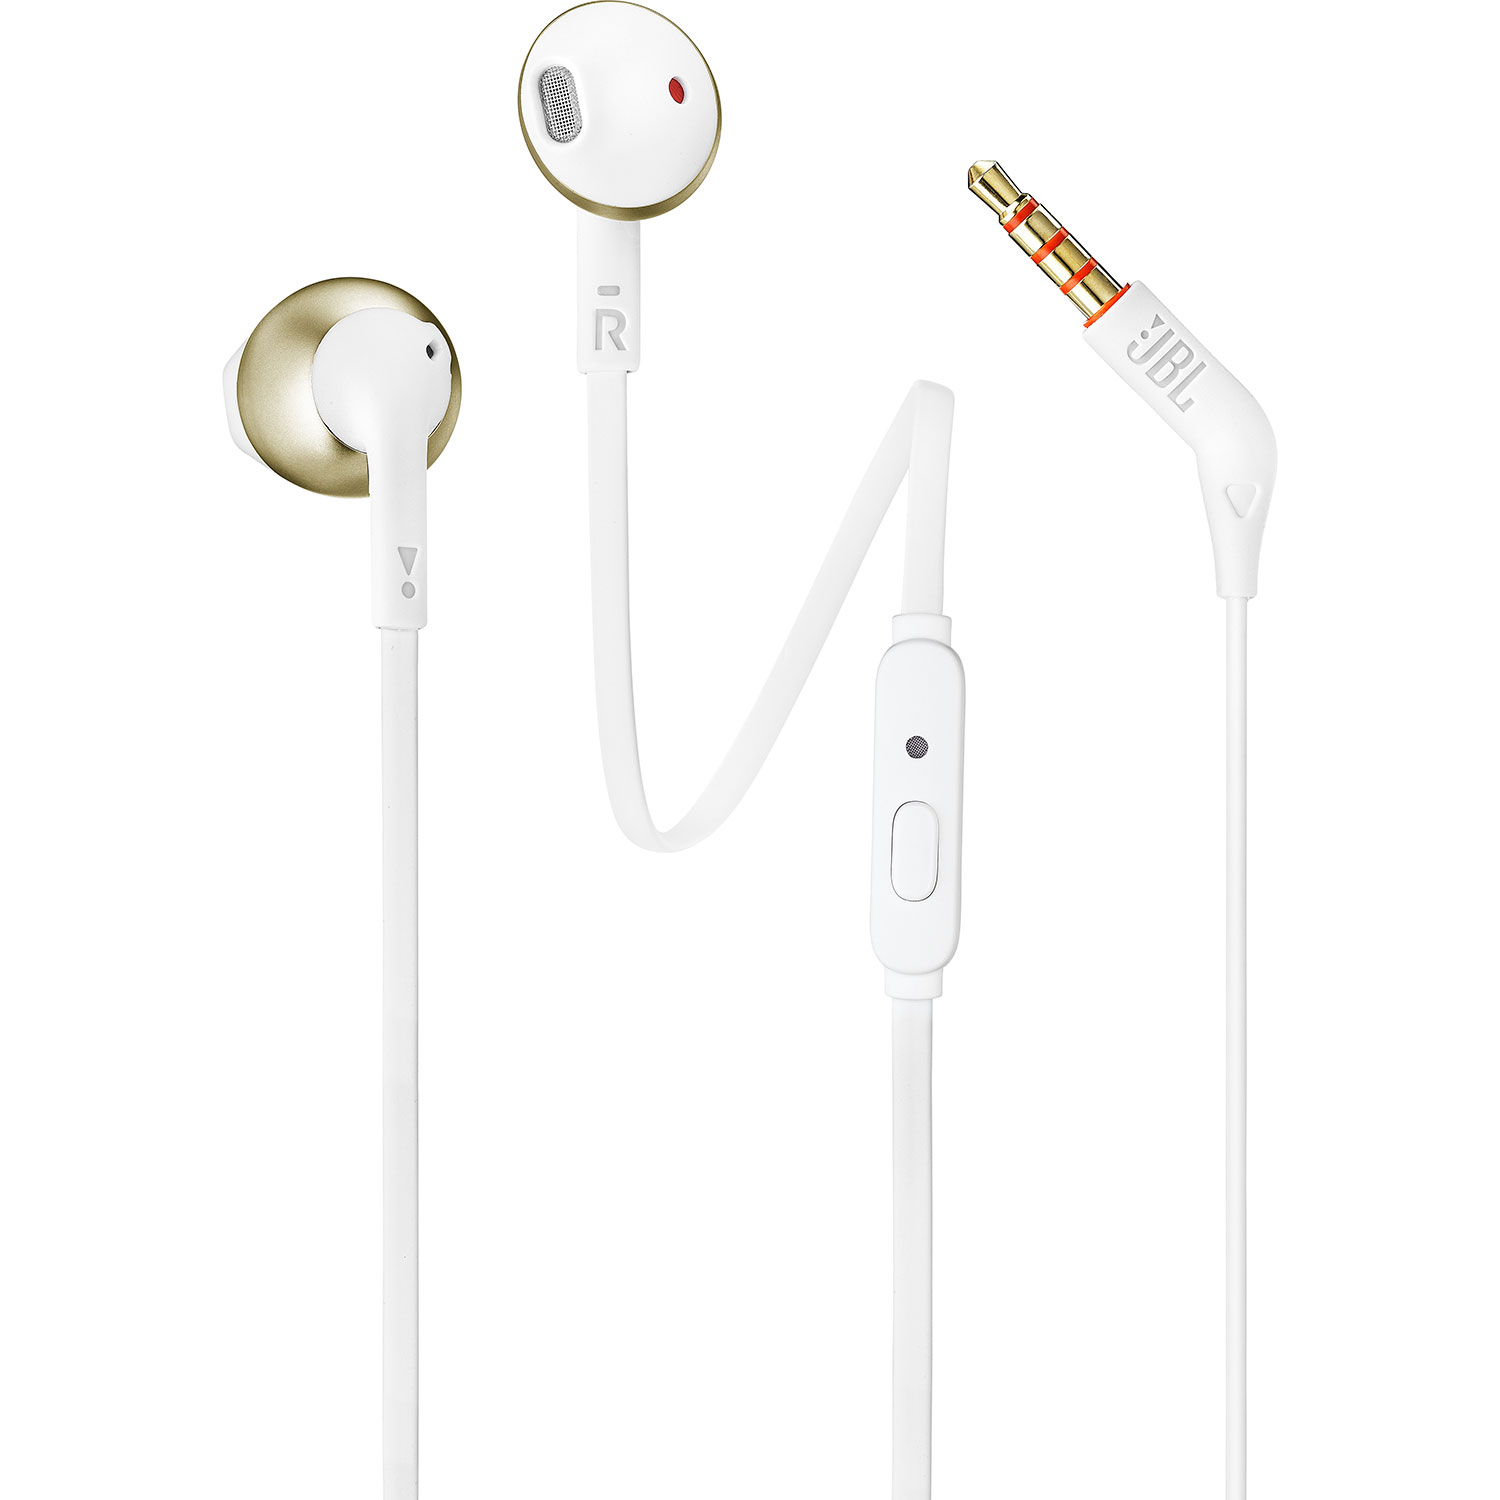 JBL Tune 205 (T205) Champagne Gold Earbud Headphones + JBL Pure Bass Sound + Single button remote/mic